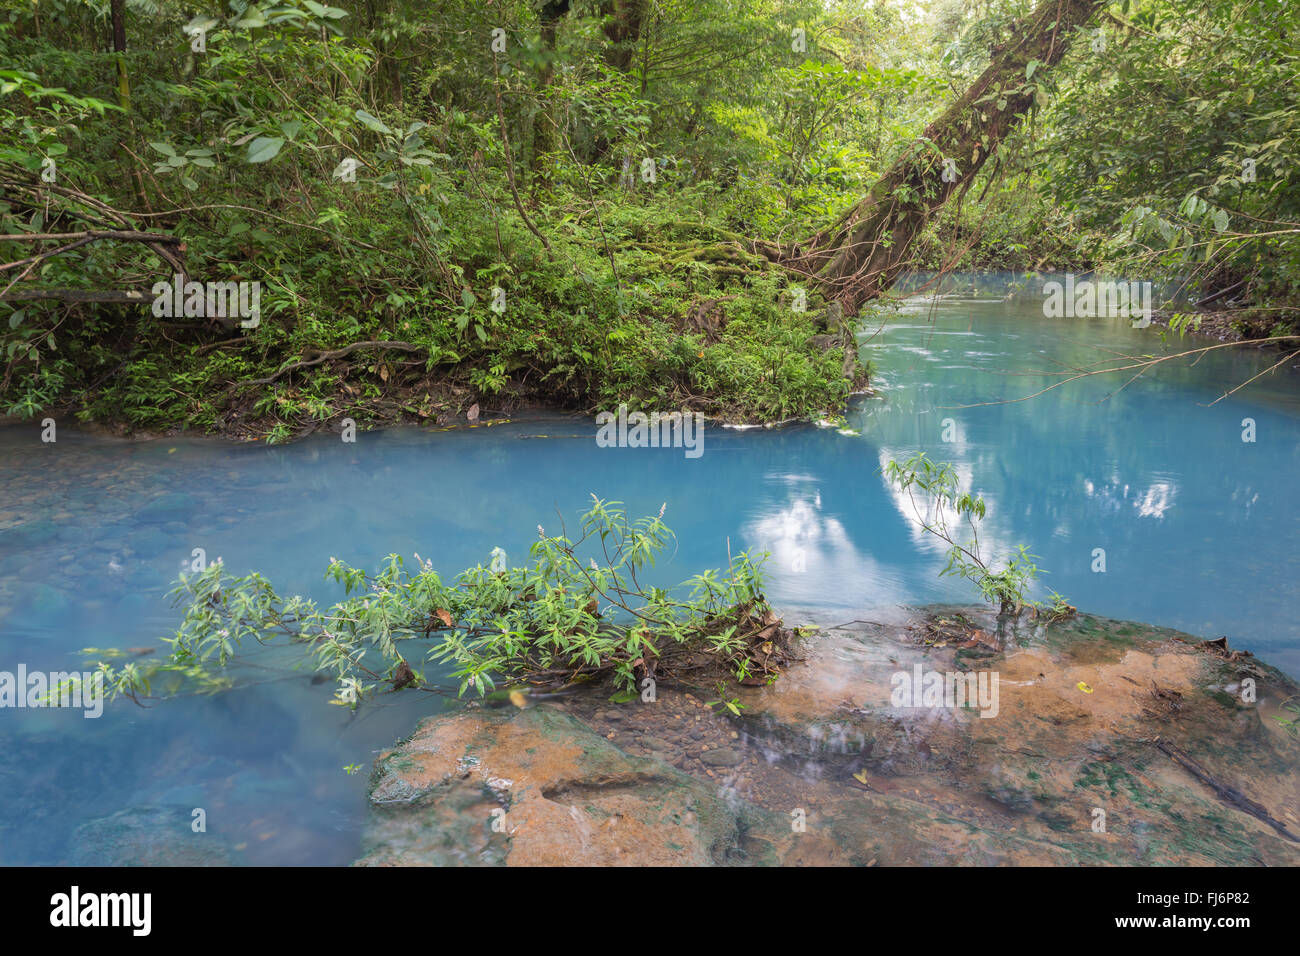 Scenery Celeste river in Tenorio National park - Costa rica - Stock Image